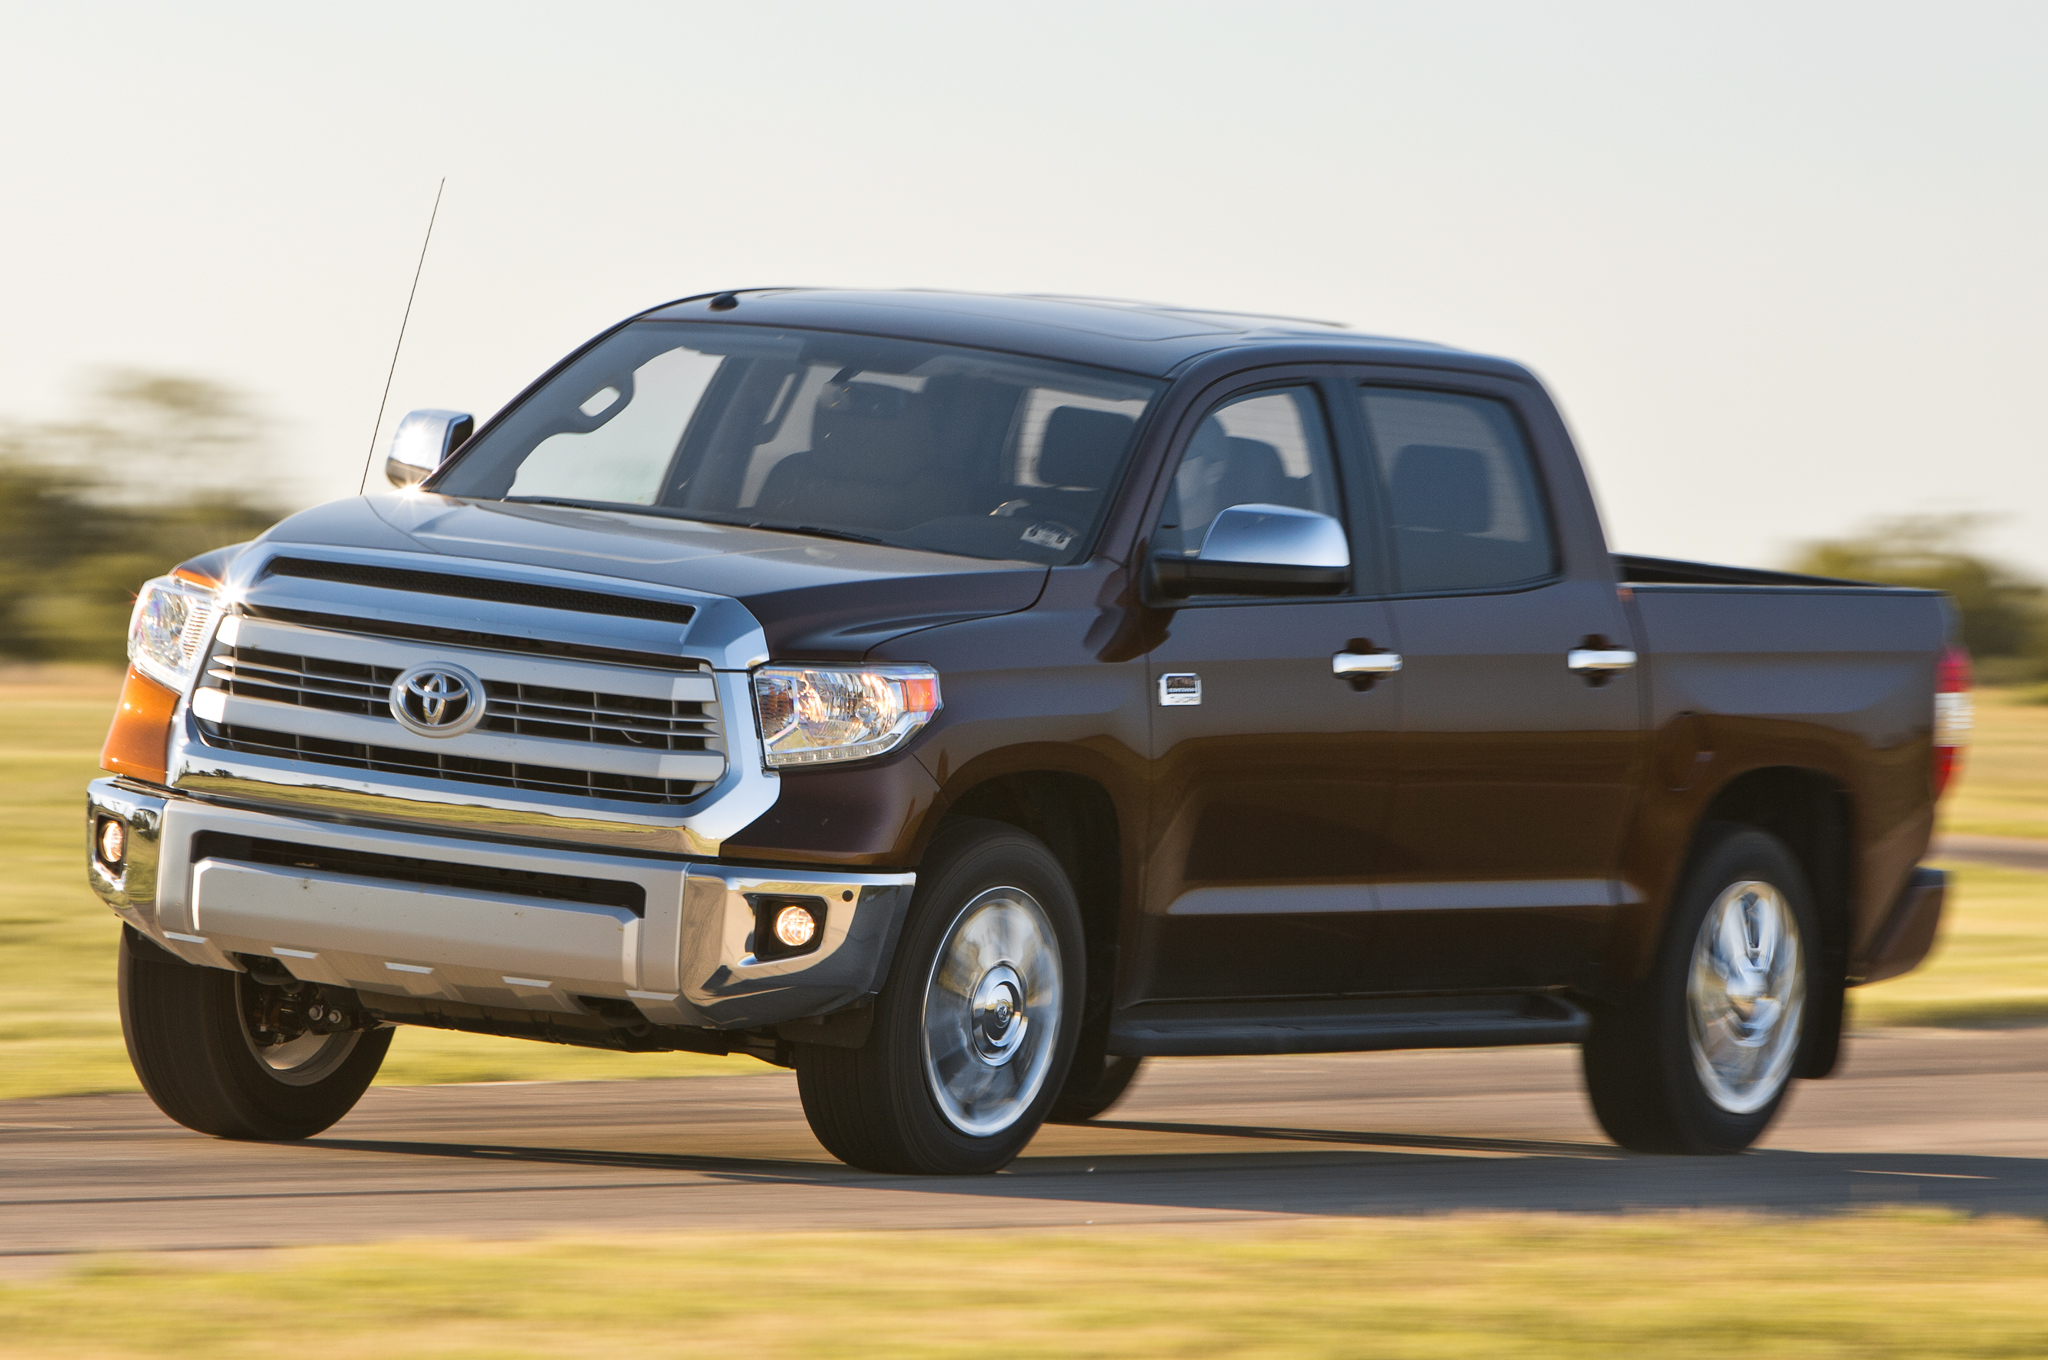 2014 Motor Trend Truck of the Year Contender Toyota Tundra Motor